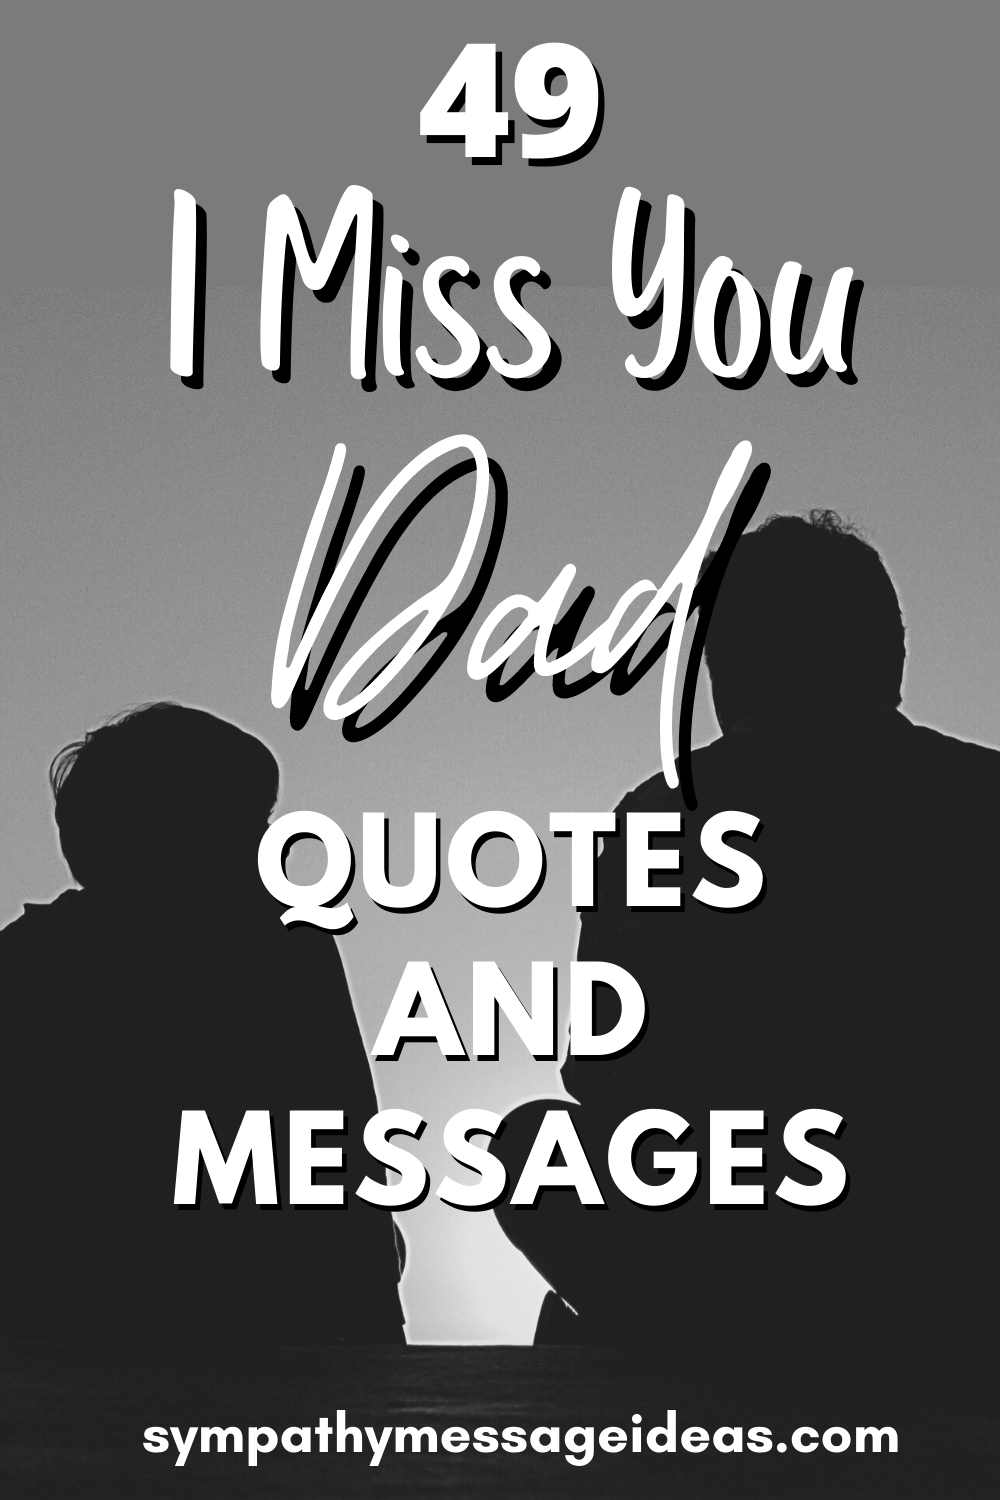 I miss you dad messages and quotes